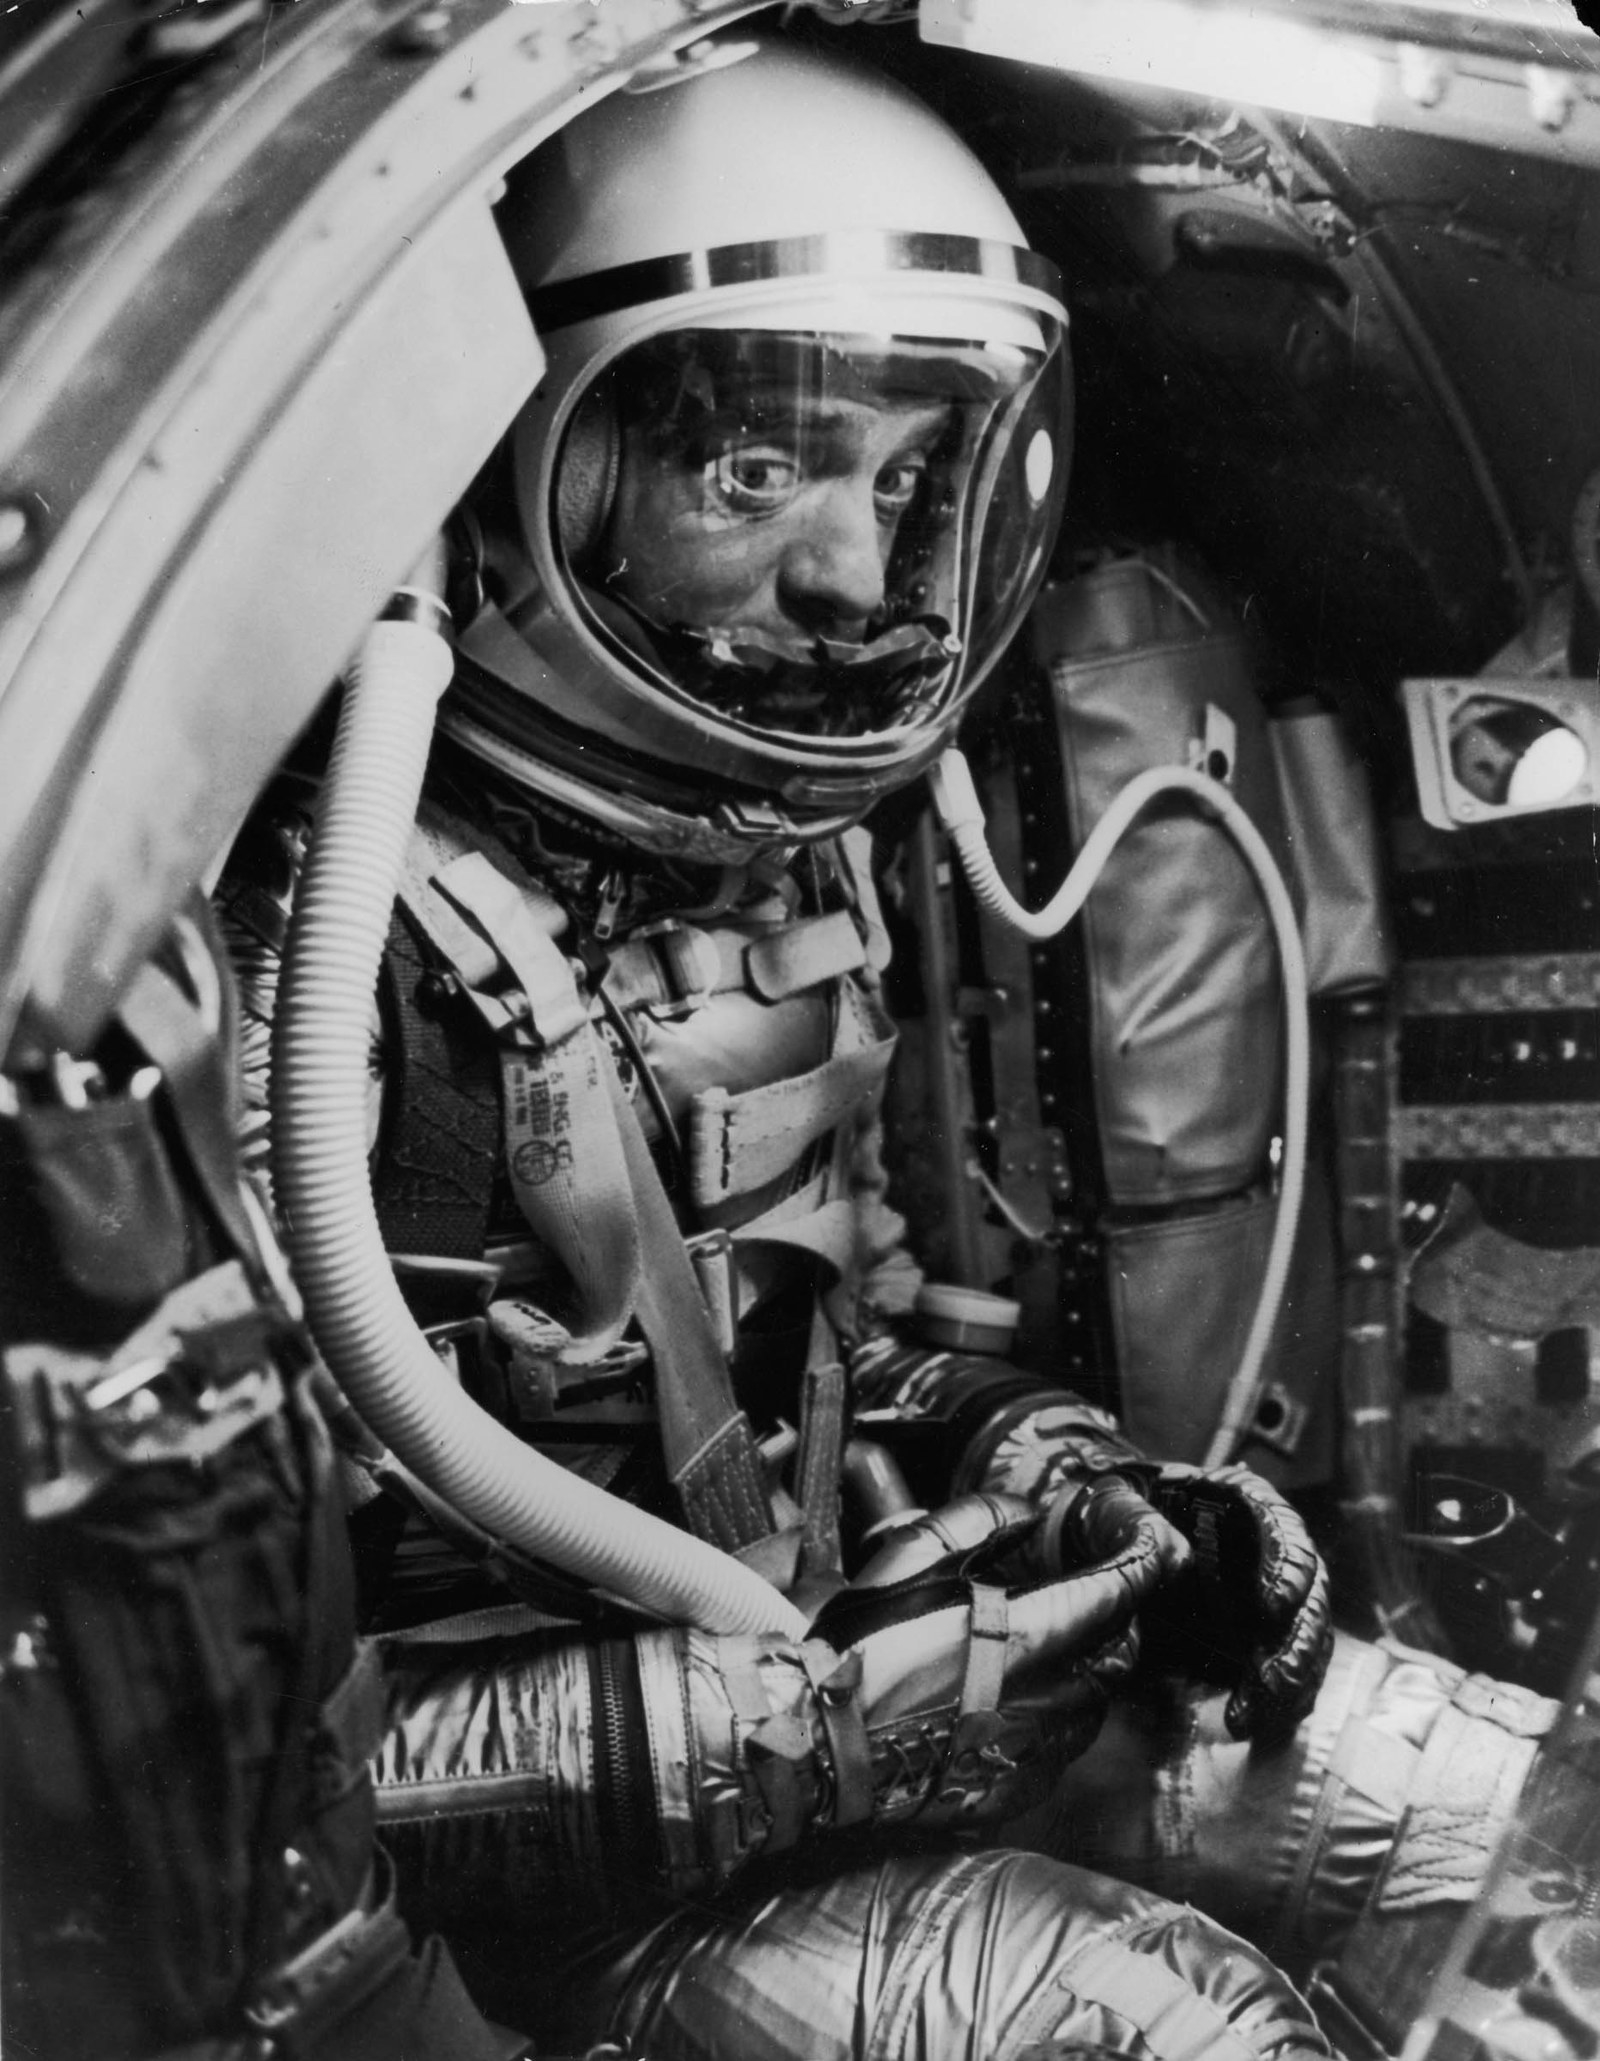 1961 US astronaut Alan Shepard waits for the Mercury capsule Freedom 7 to be launched into space at Cape Canaveral, Florida. Shepard, one of the seven original NASA astronauts, became the first American in space when the capsule was launched to an altitude of 117 miles, making a 15-minute suborbital flight of 302 miles down the Atlantic missile range before splashing into the ocean.